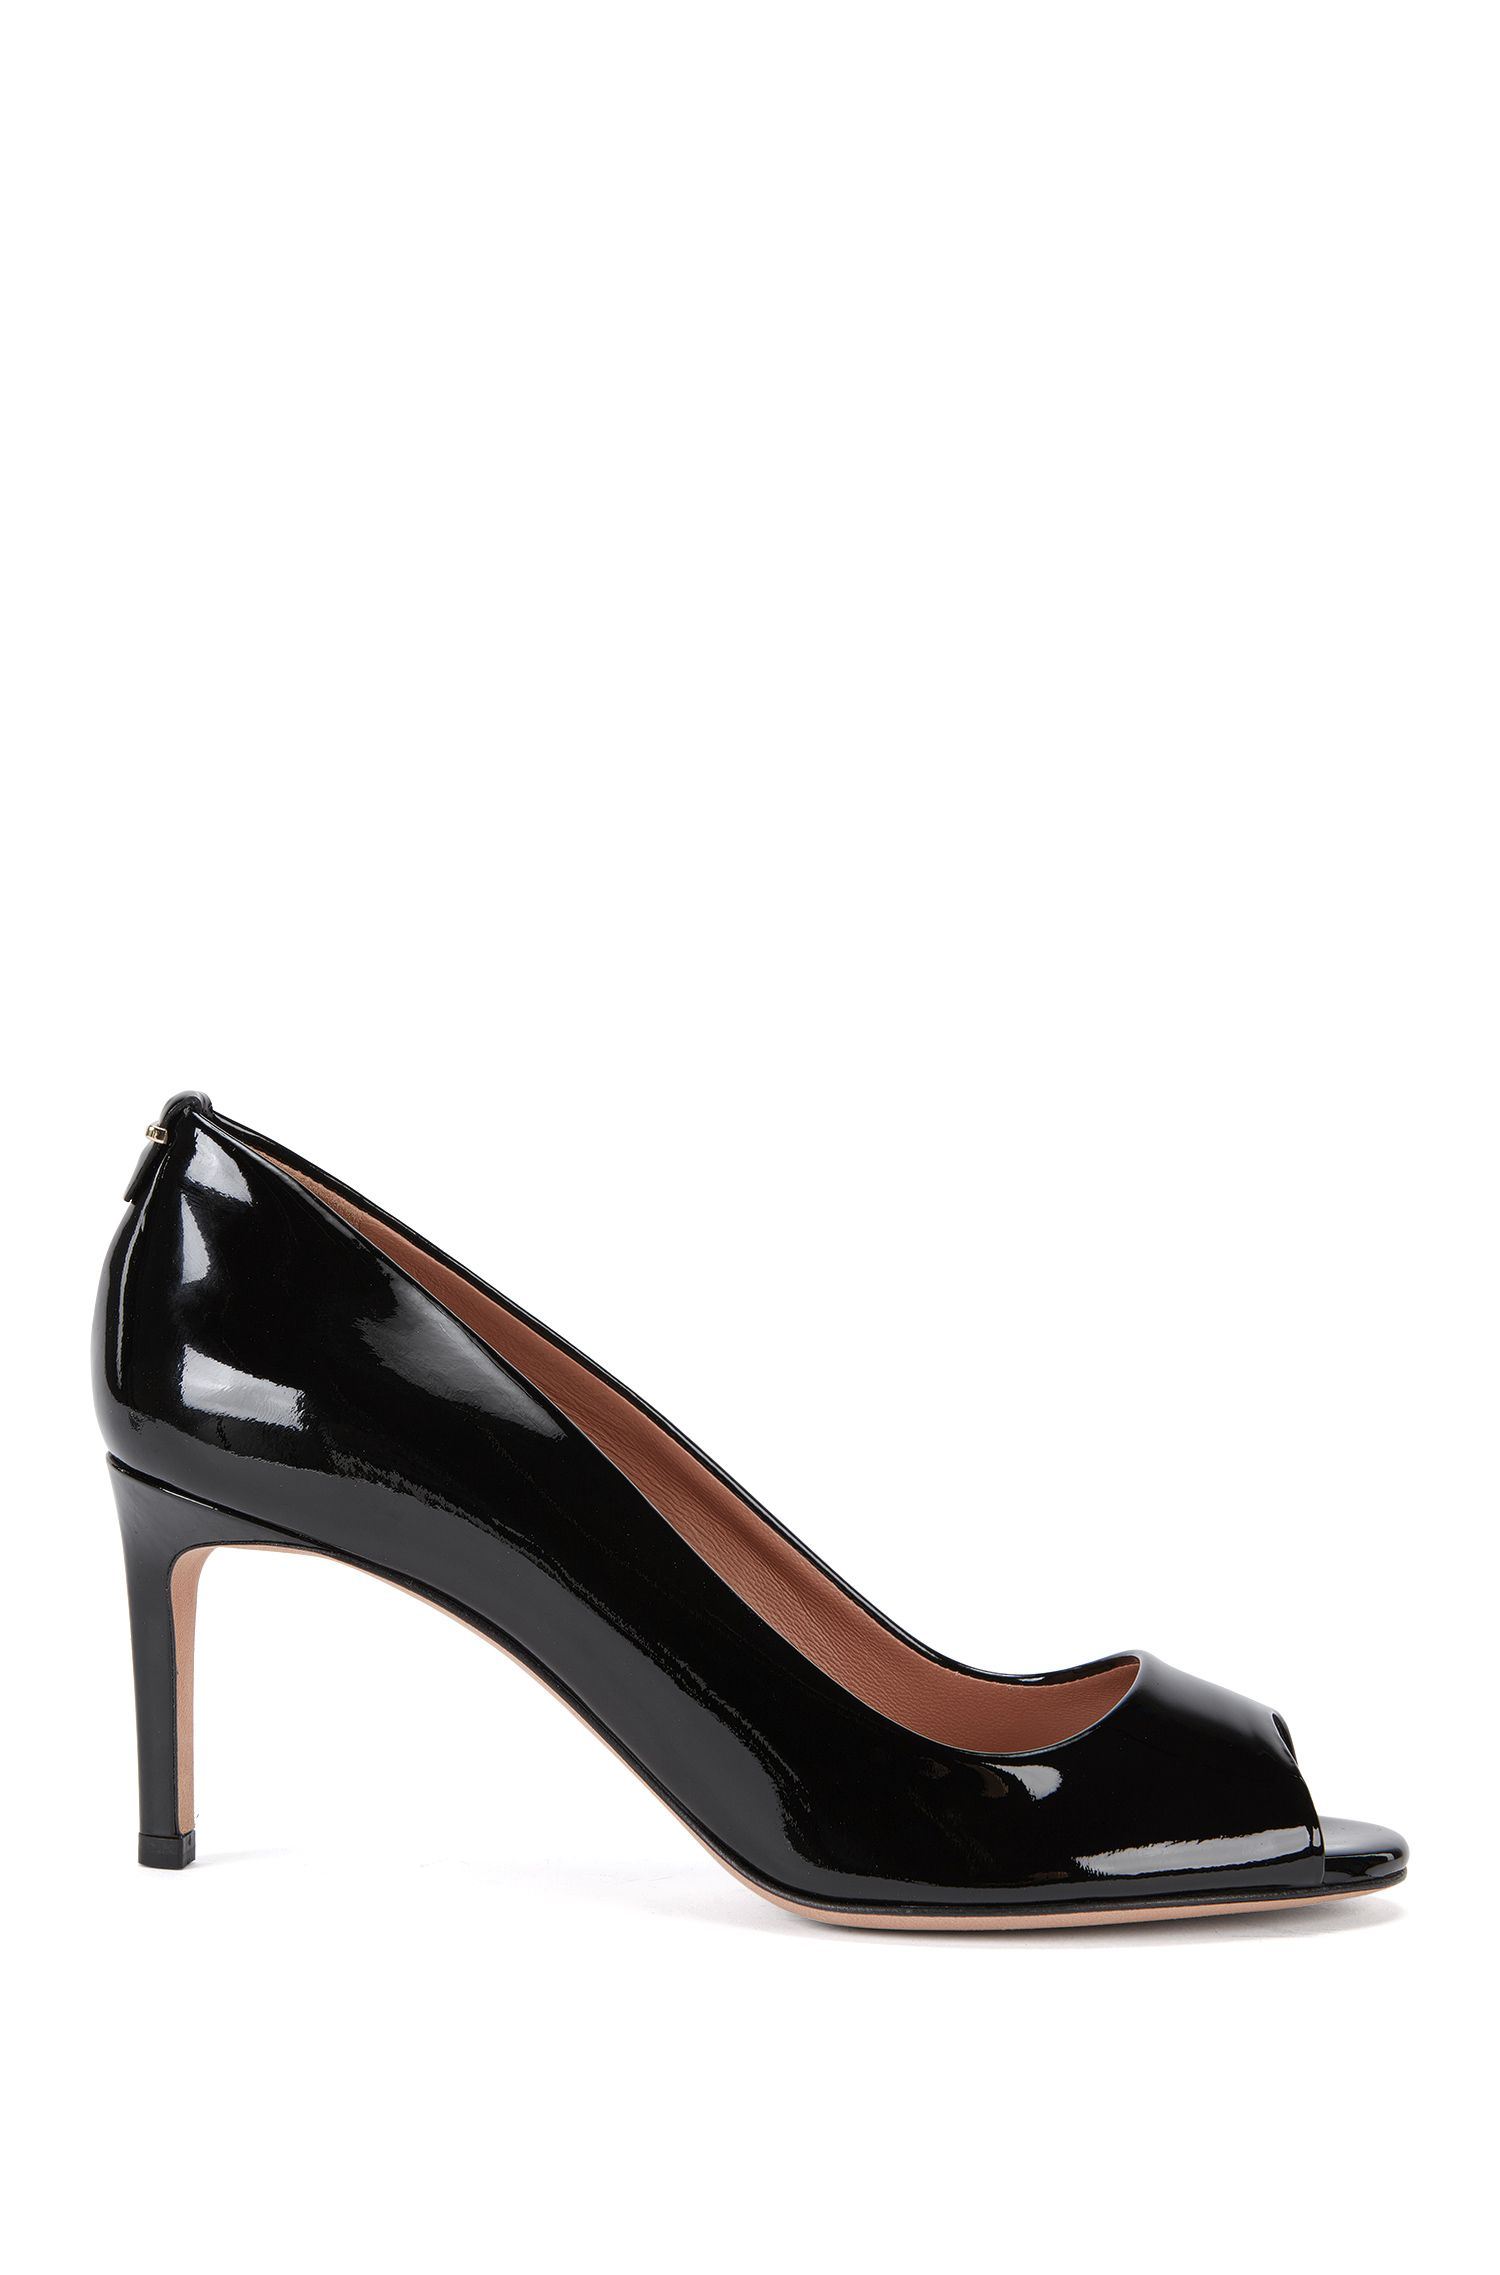 BOSS Luxury Staple Peeptoe-Pumps aus italienischem Lackleder